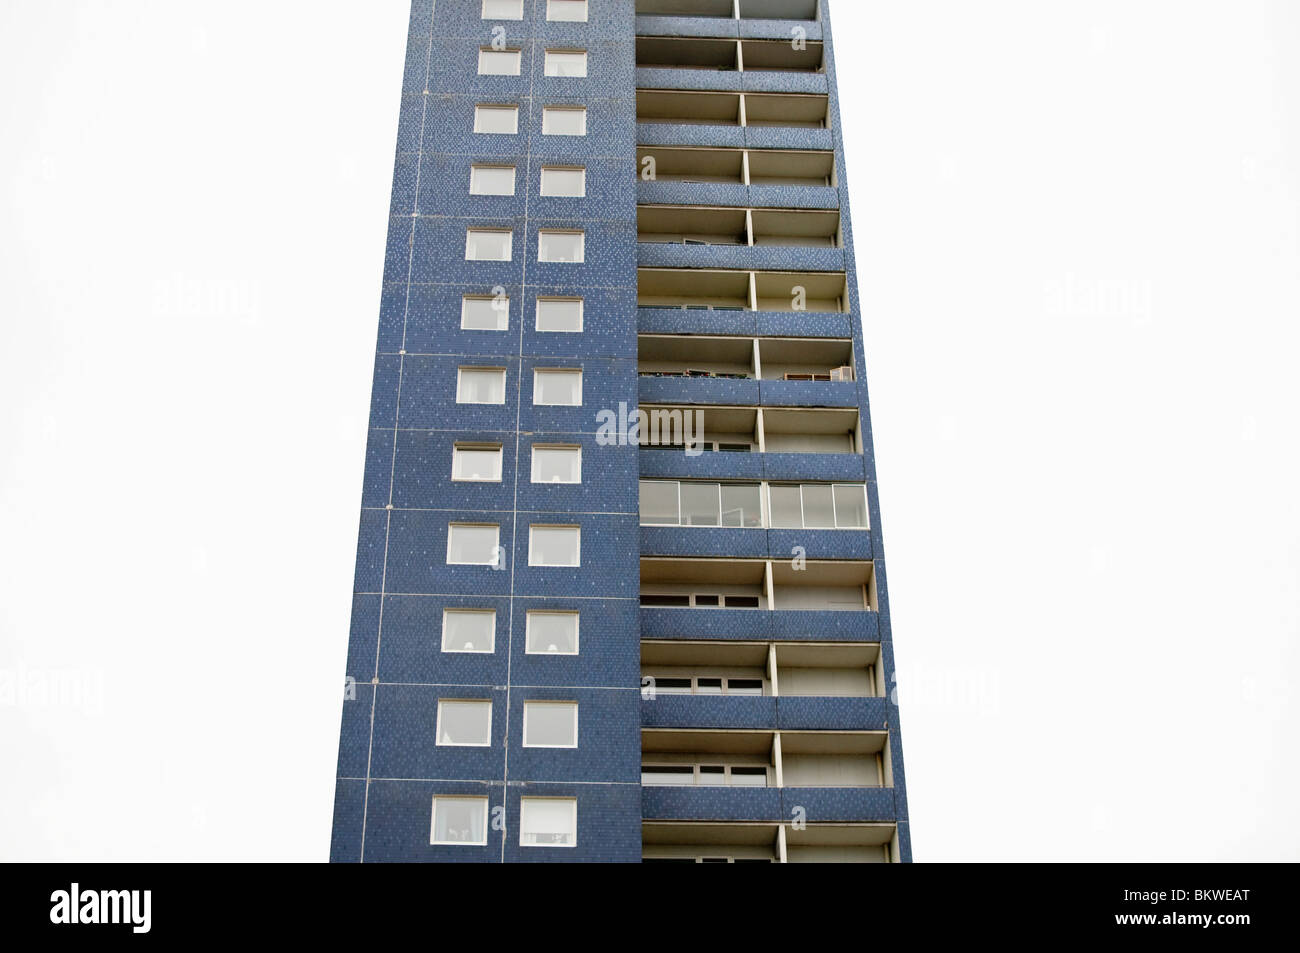 A lonely high-rise building - Stock Image